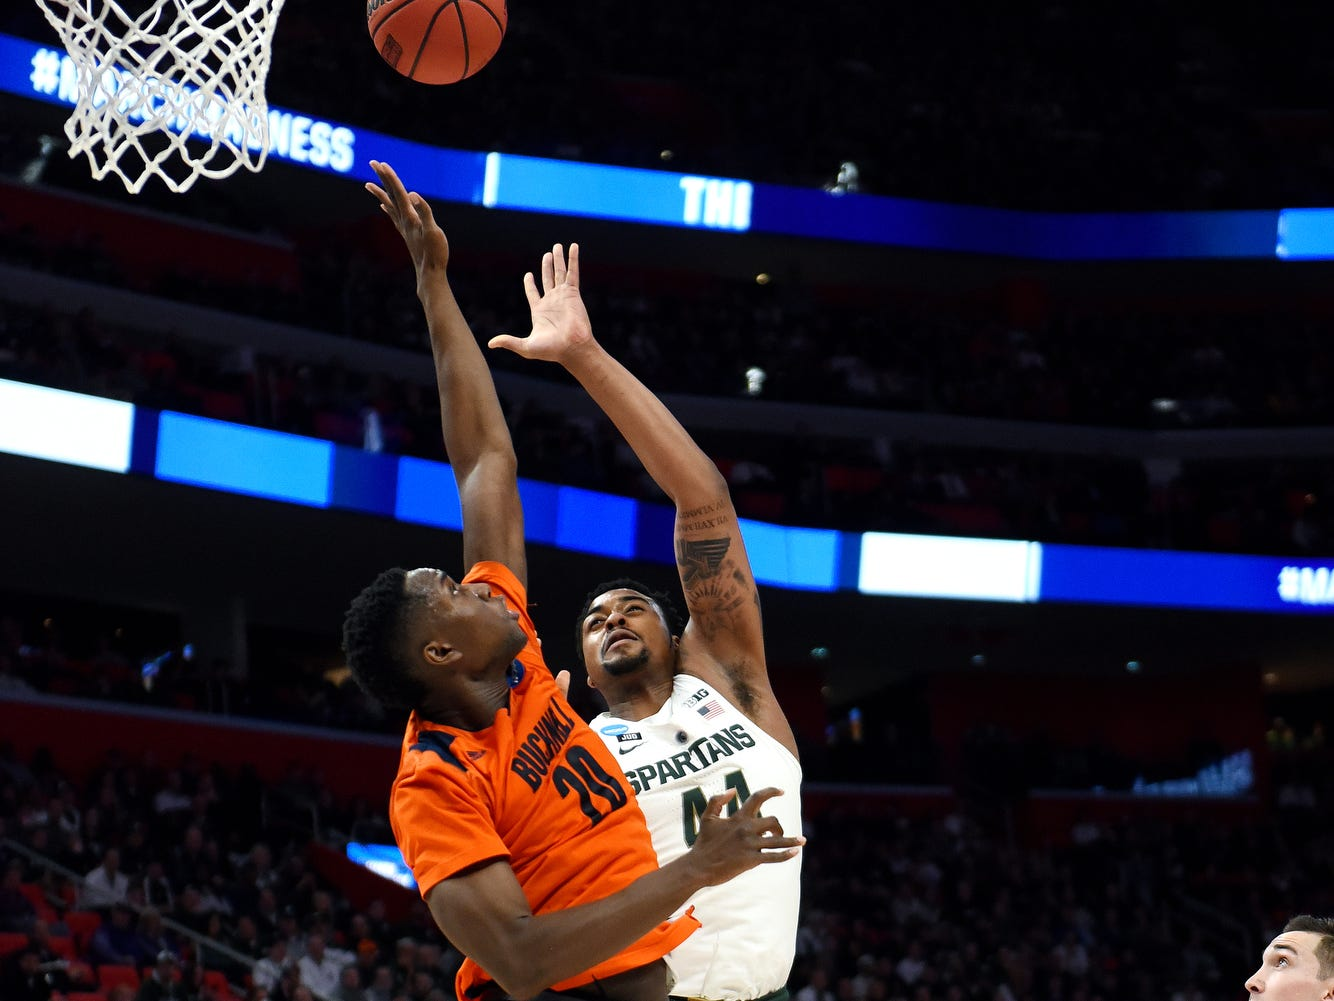 Michigan State's Nick Ward, right, shoots as Bucknell's Nana Foulland defends during the second half on Friday, March 16, 2018, at the Little Caesars Arena in Detroit. The Spartans beat Bucknell 82-78 to advance to the second round in the NCAA tournament.